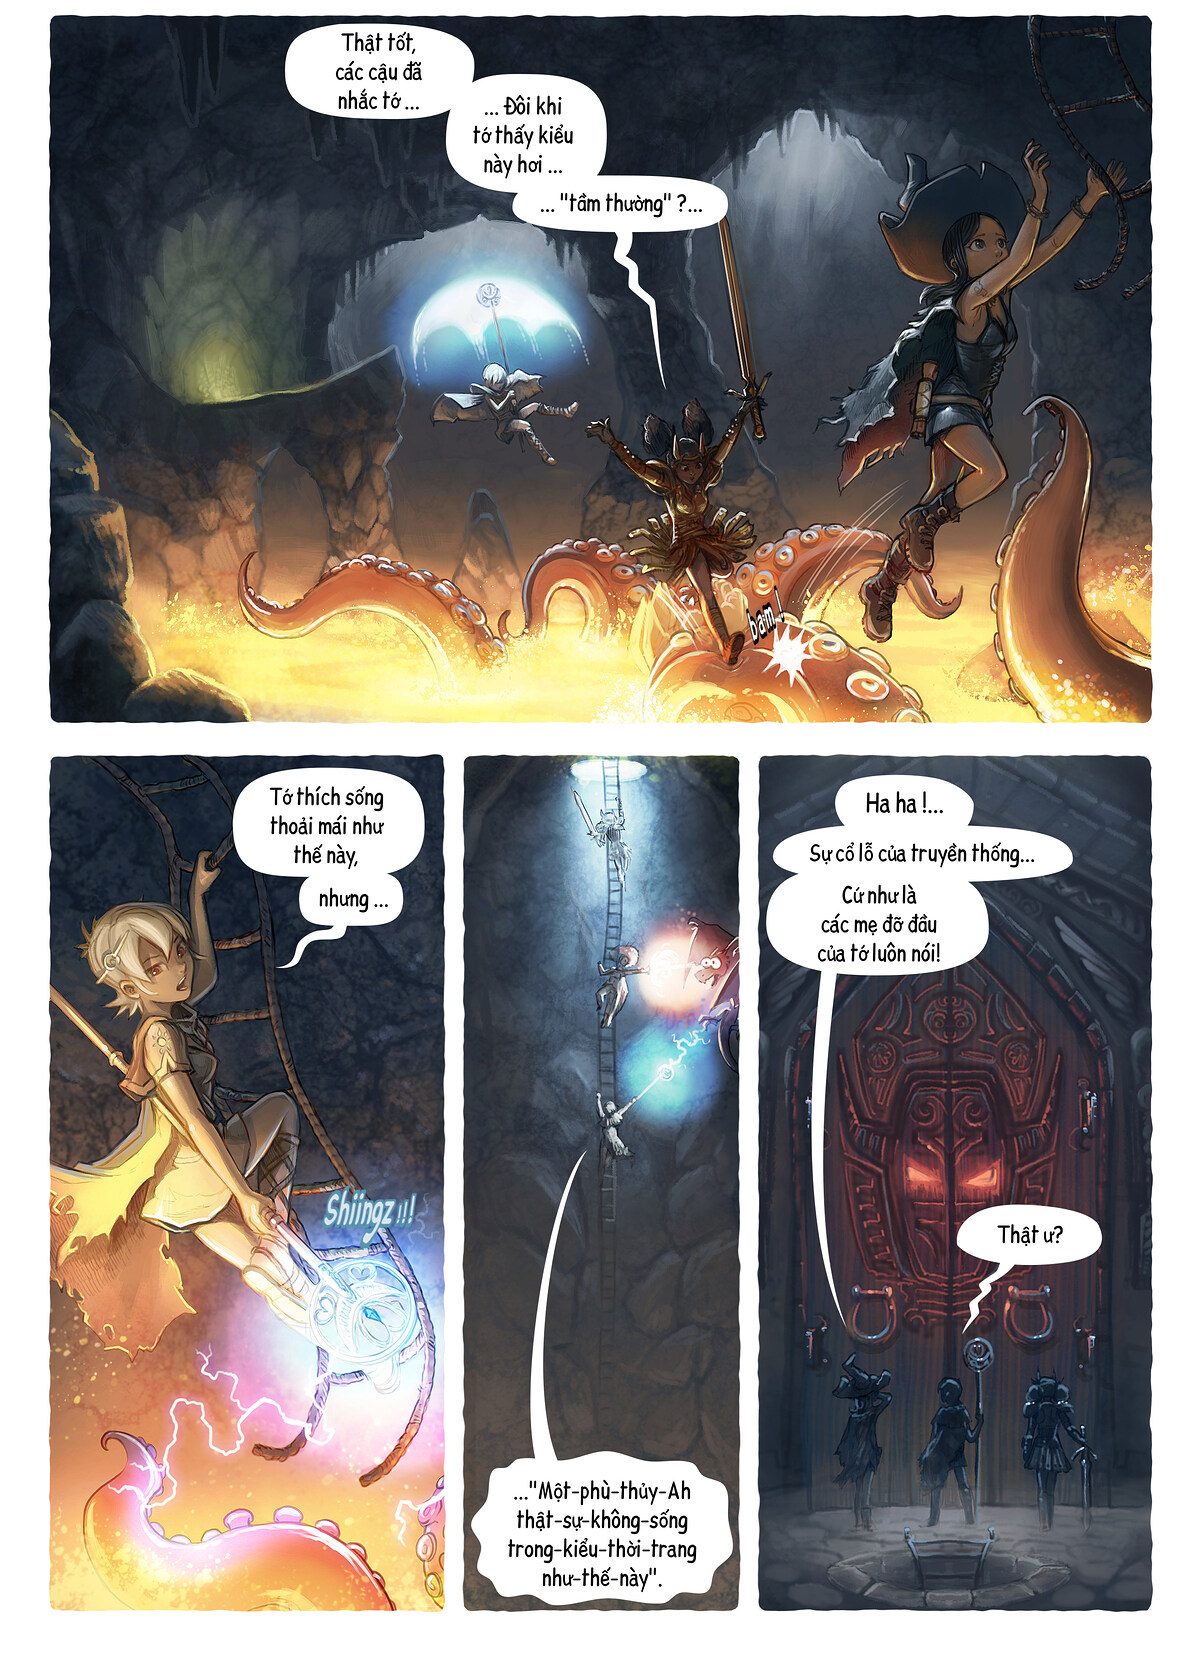 A webcomic page of Pepper&Carrot, Tập 13 [vi], trang 3